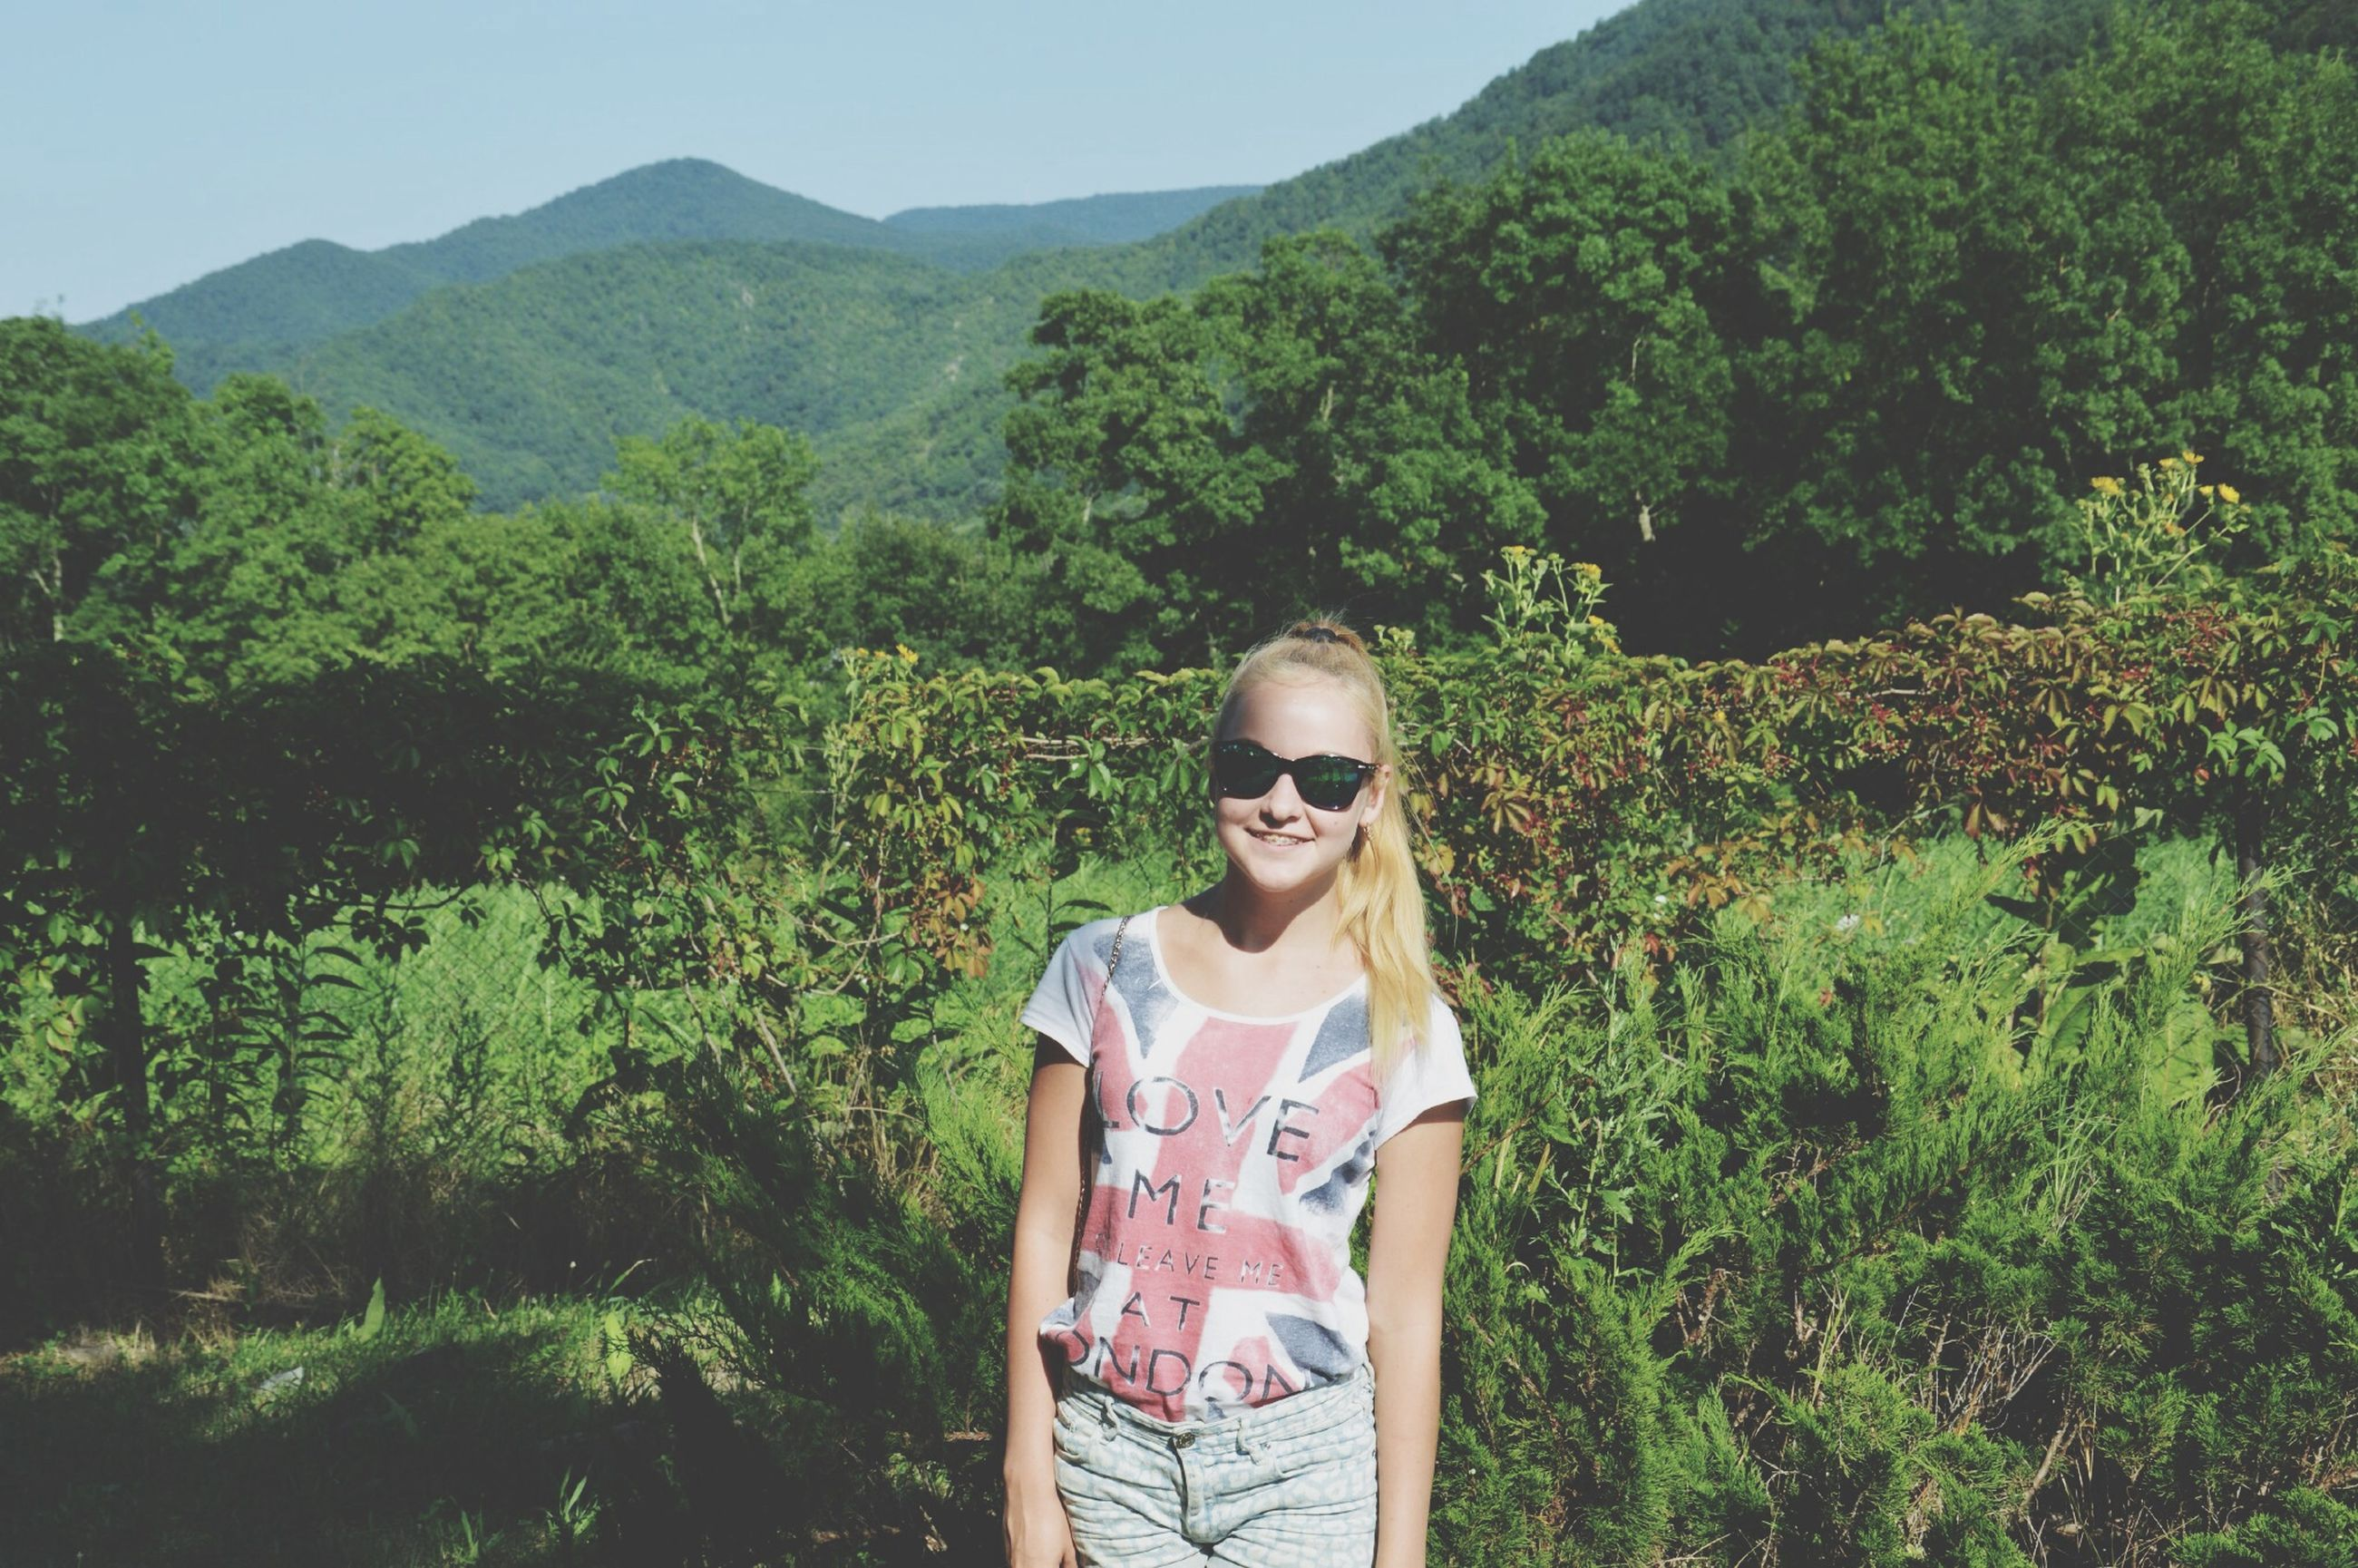 mountain, casual clothing, lifestyles, person, leisure activity, tree, standing, young adult, three quarter length, waist up, green color, nature, growth, beauty in nature, tranquility, smiling, portrait, looking at camera